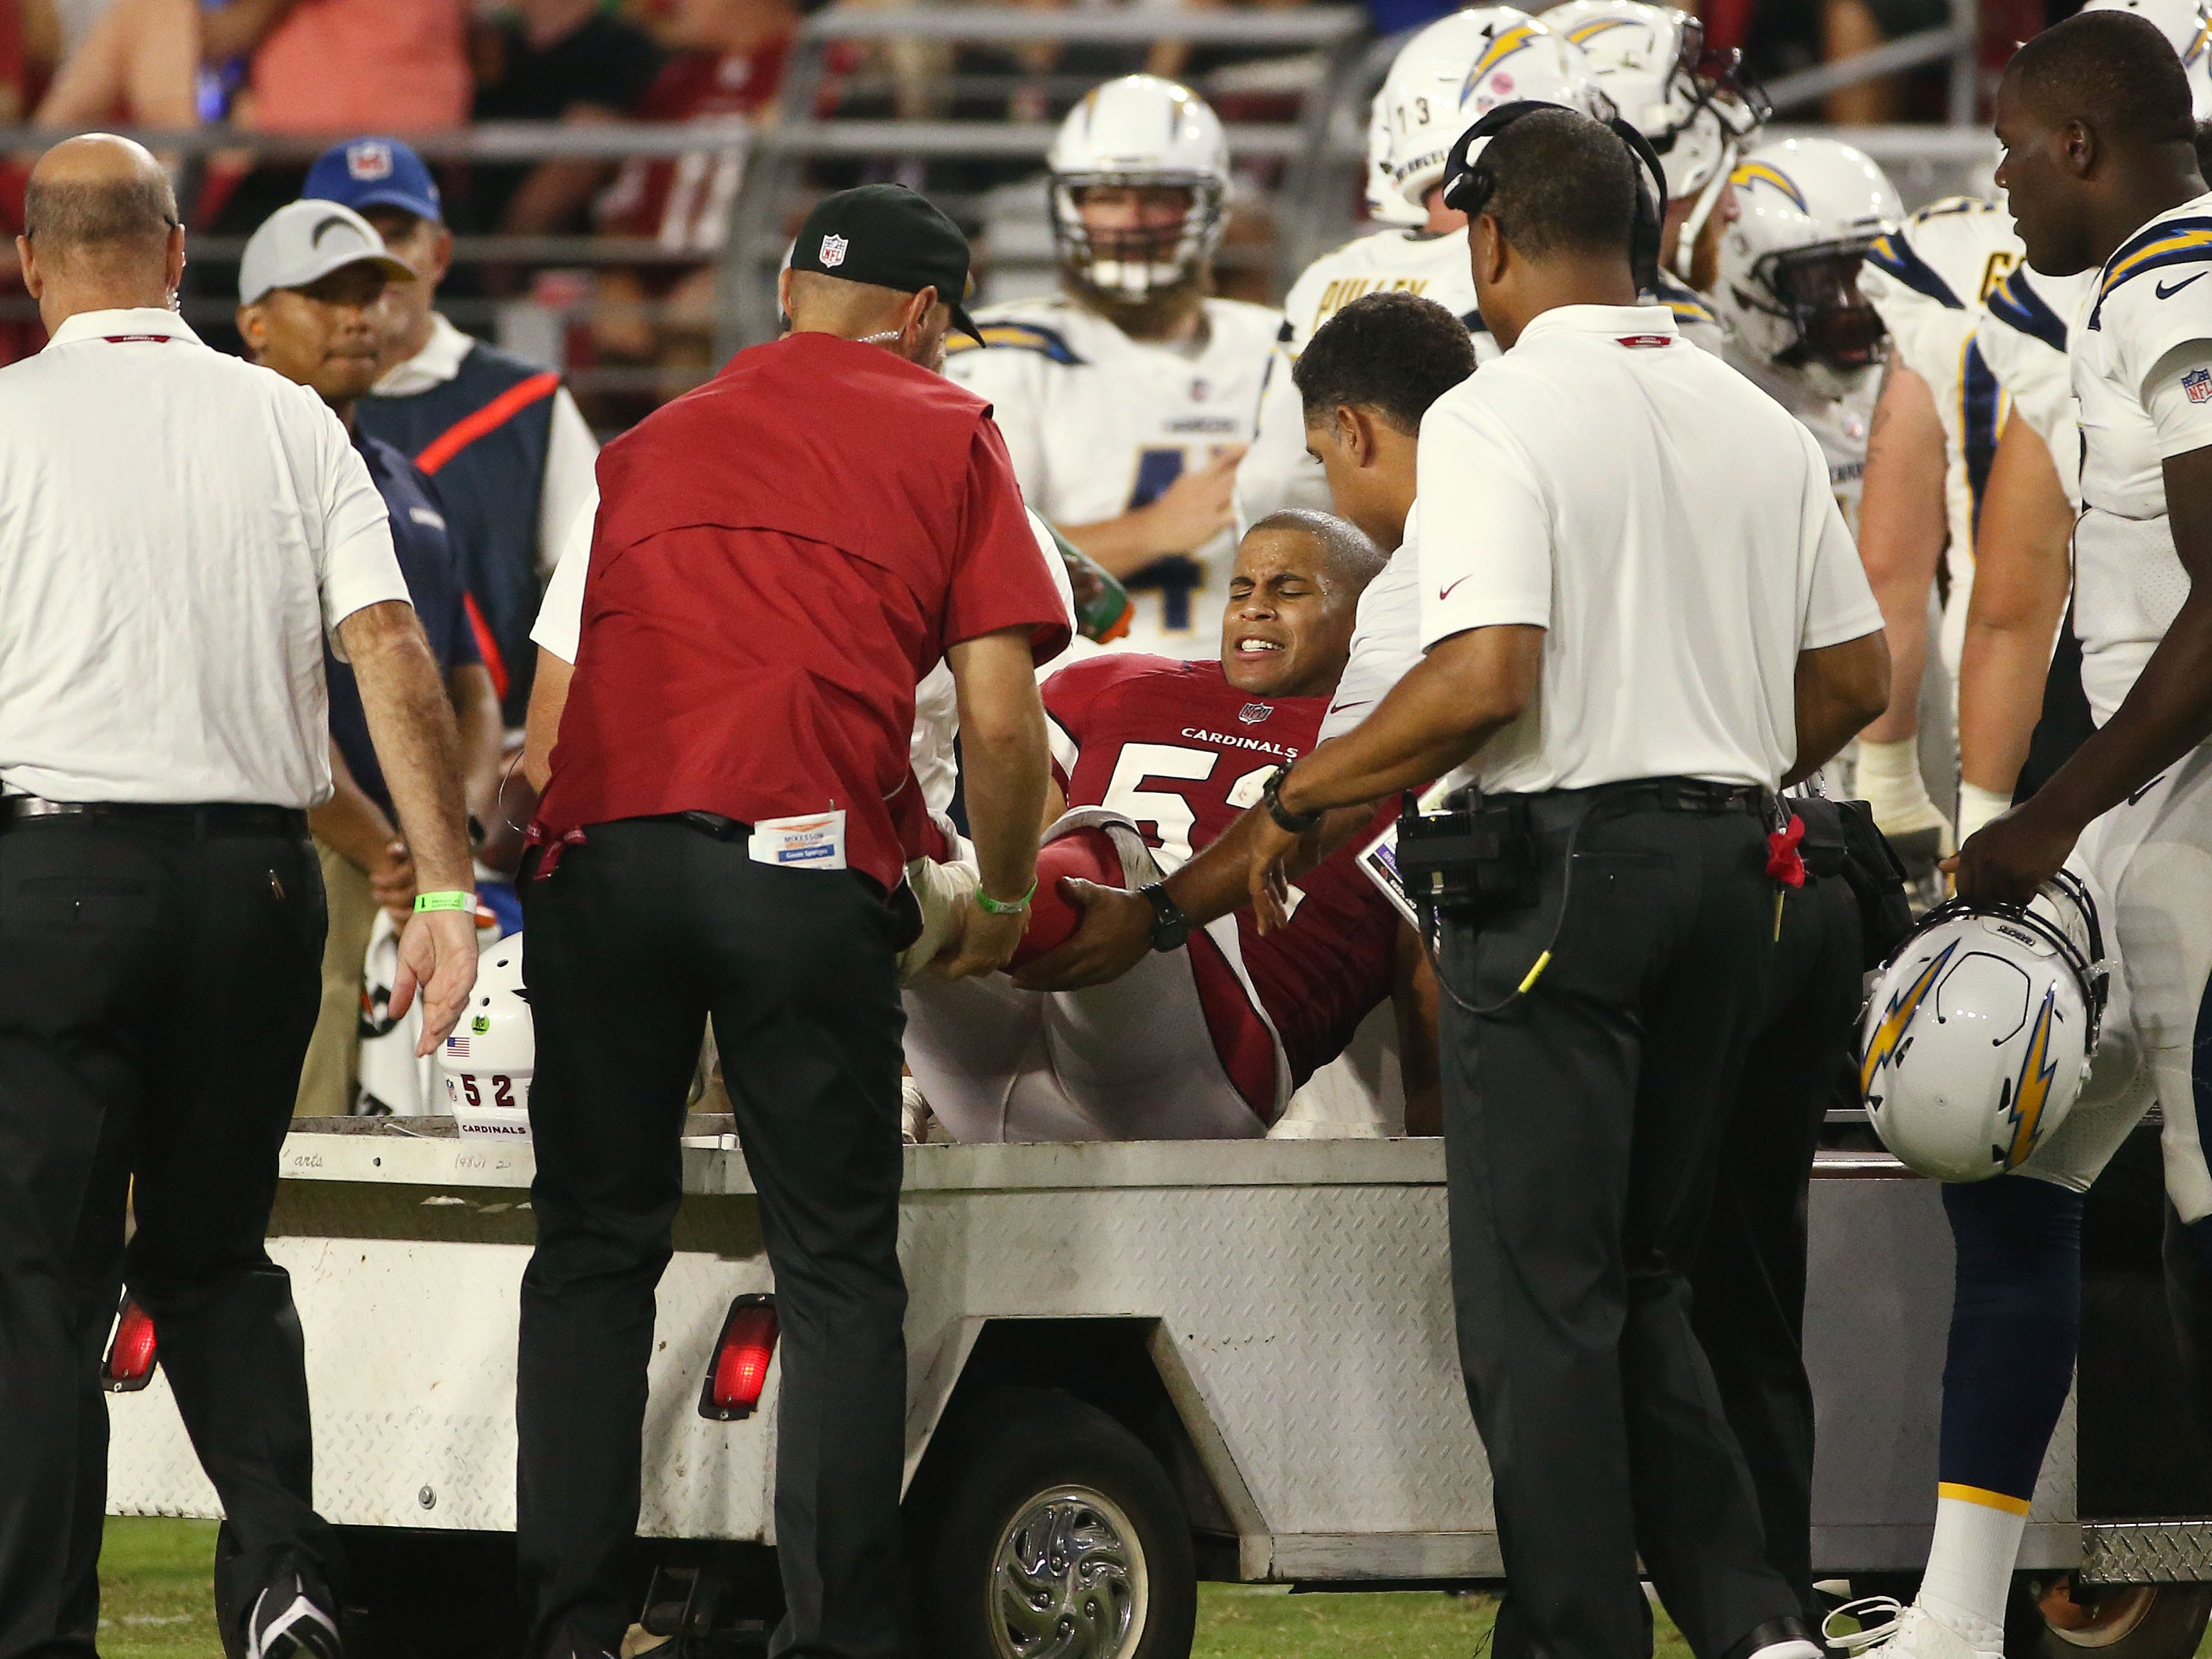 Arizona Cardinals linebacker Jeremy Cash is carted off the field after an injury against the L.A. Chargers in the second half during a preseason NFL football game on Aug. 11, 2018 at University of Phoenix Stadium in Glendale, Ariz.